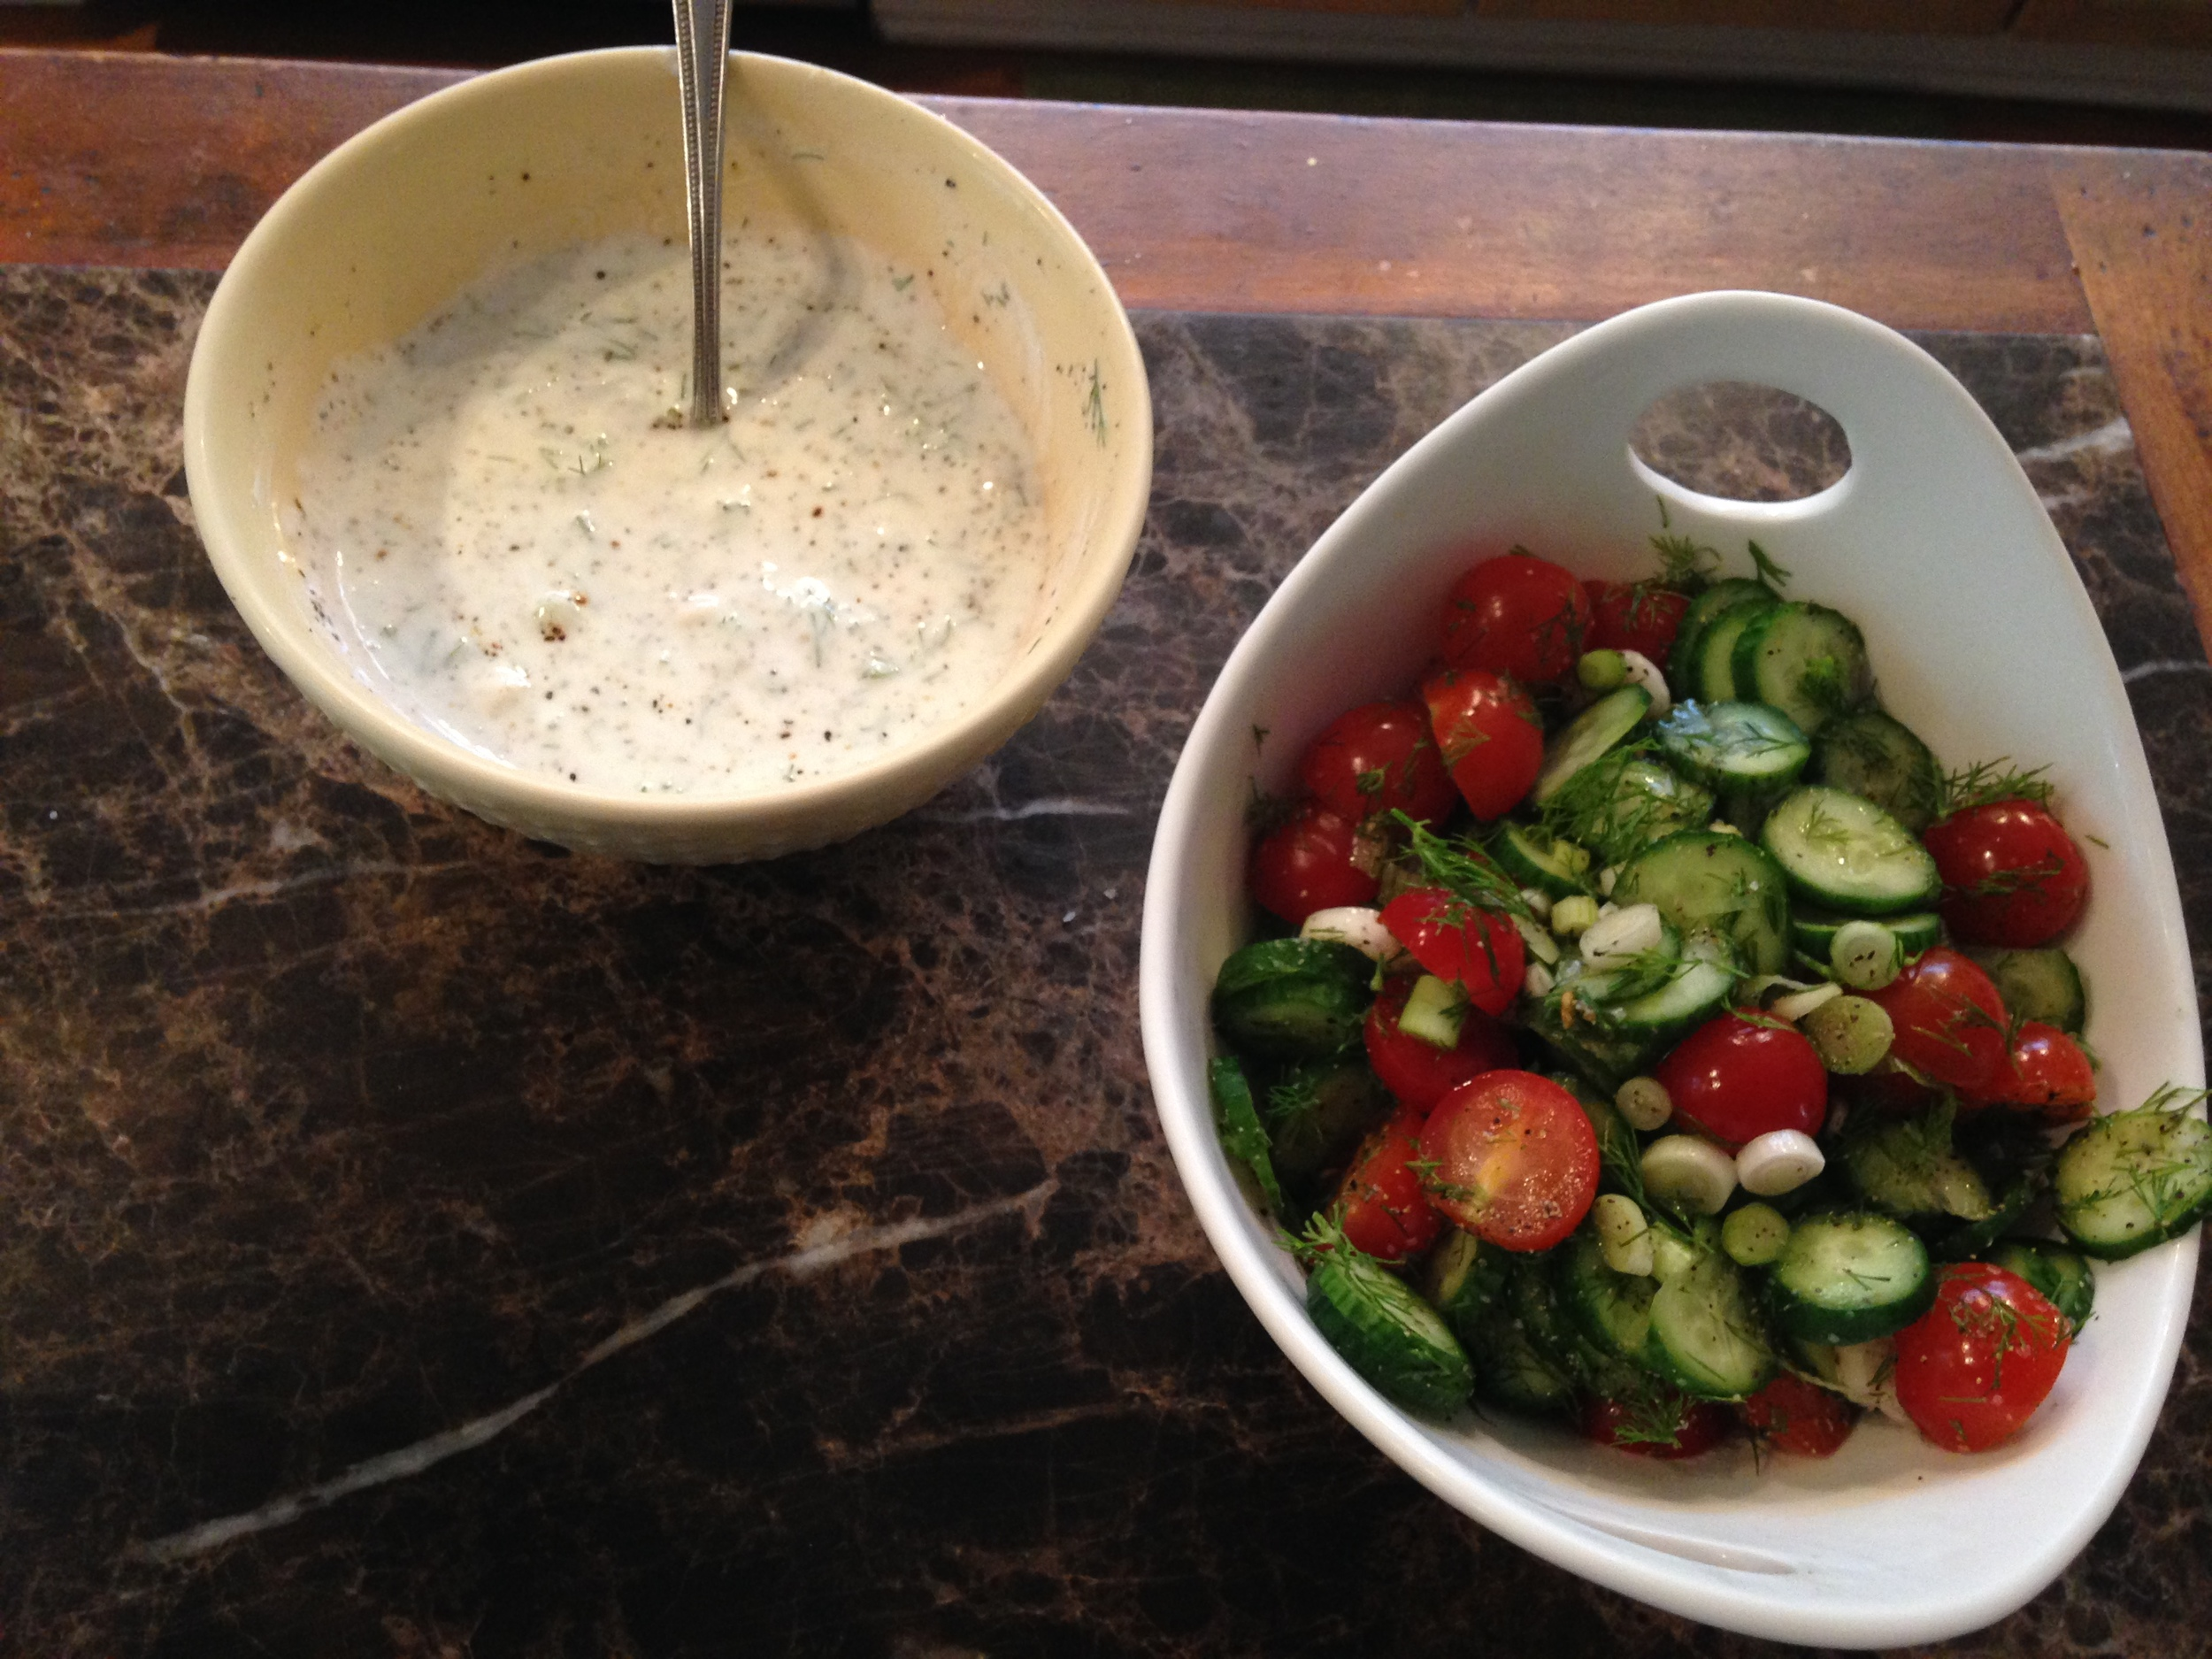 step 1 & 2: delicious creamy Dill sauce and tasty tomato-cucumber salad